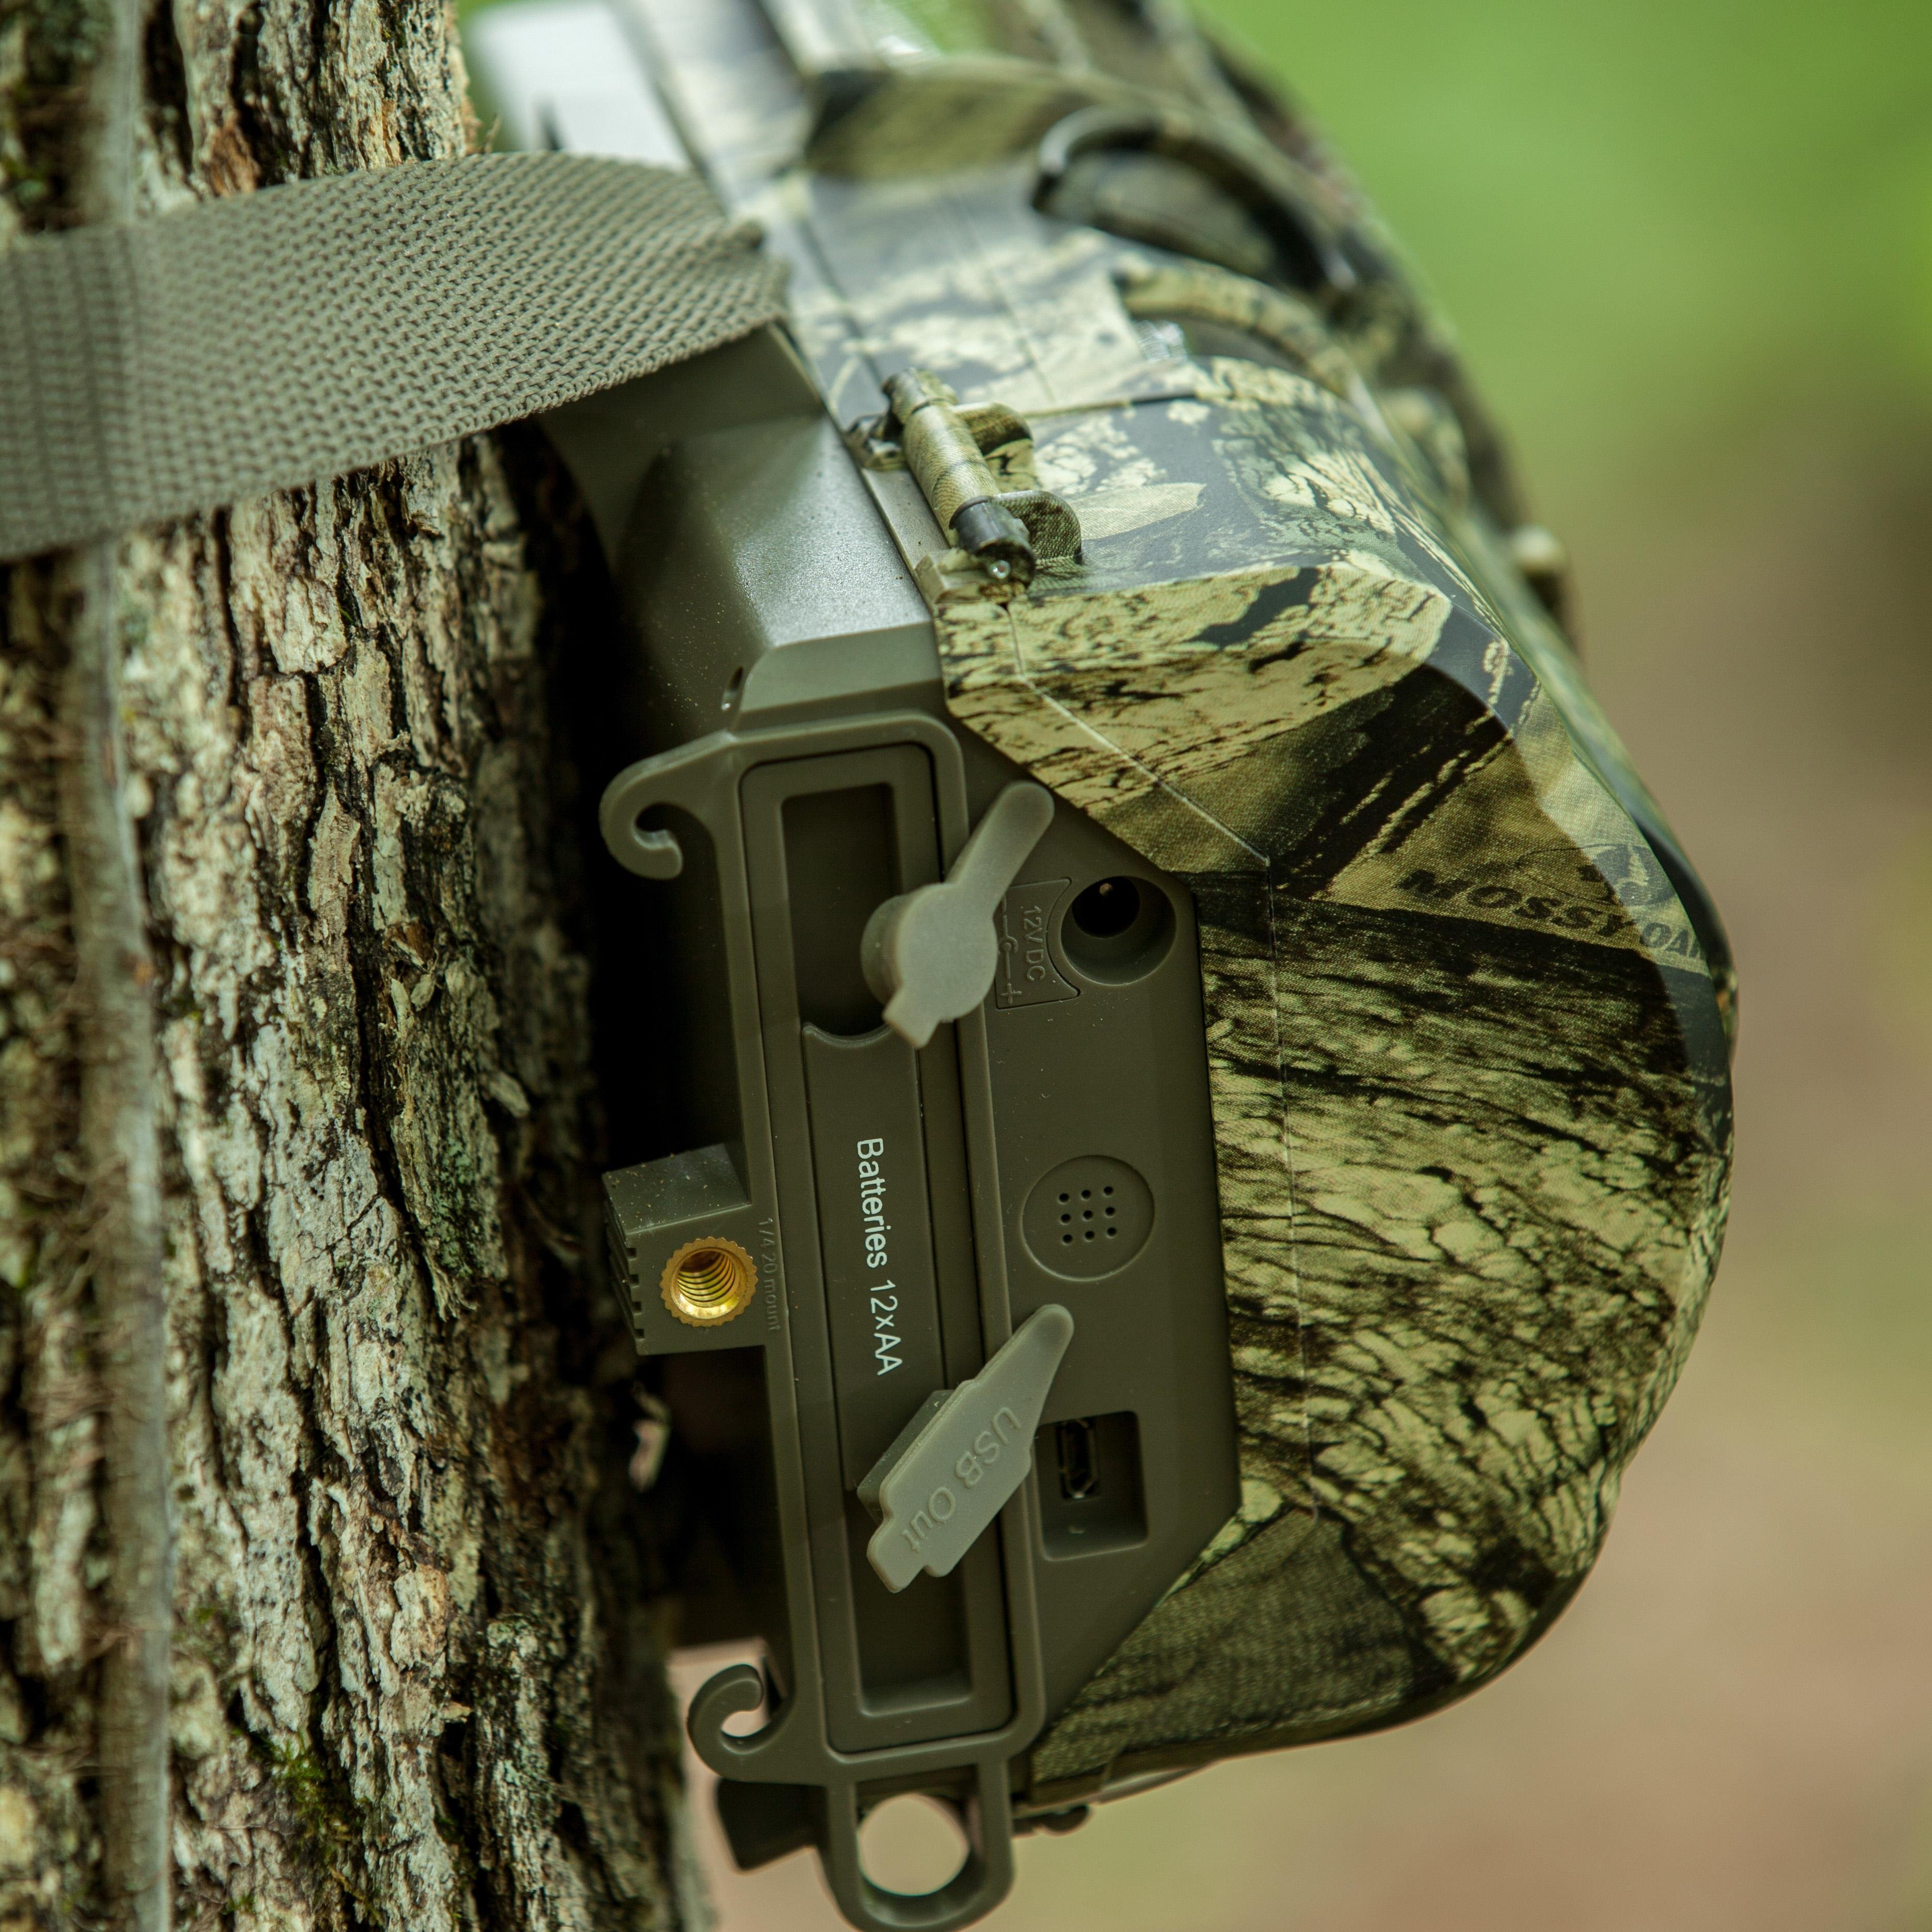 Moultrie Mobile Wireless Field Modem Mv1 >> Amazon.com : Moultrie Panoramic 180i Game Camera, Mossy ...